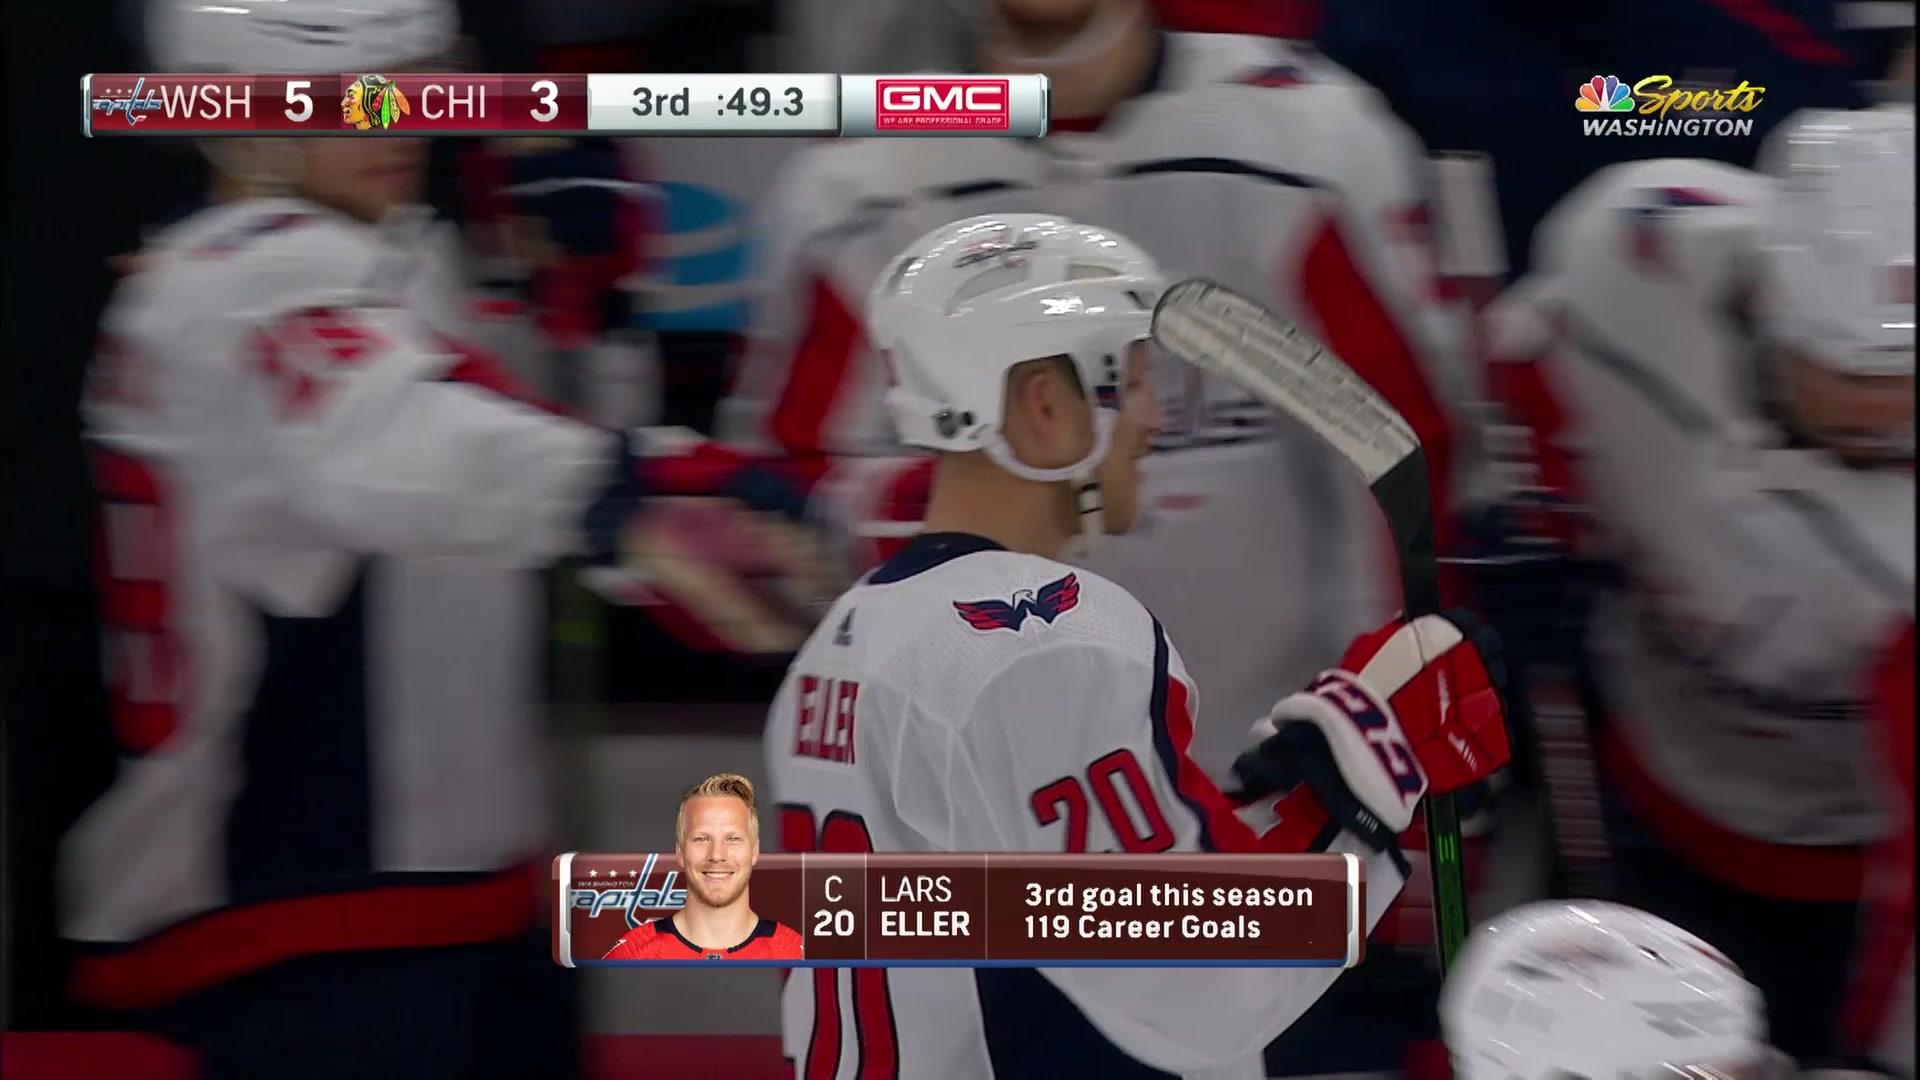 Lars Eller finishes off the Chicago Blackhawks with an empty-net goal